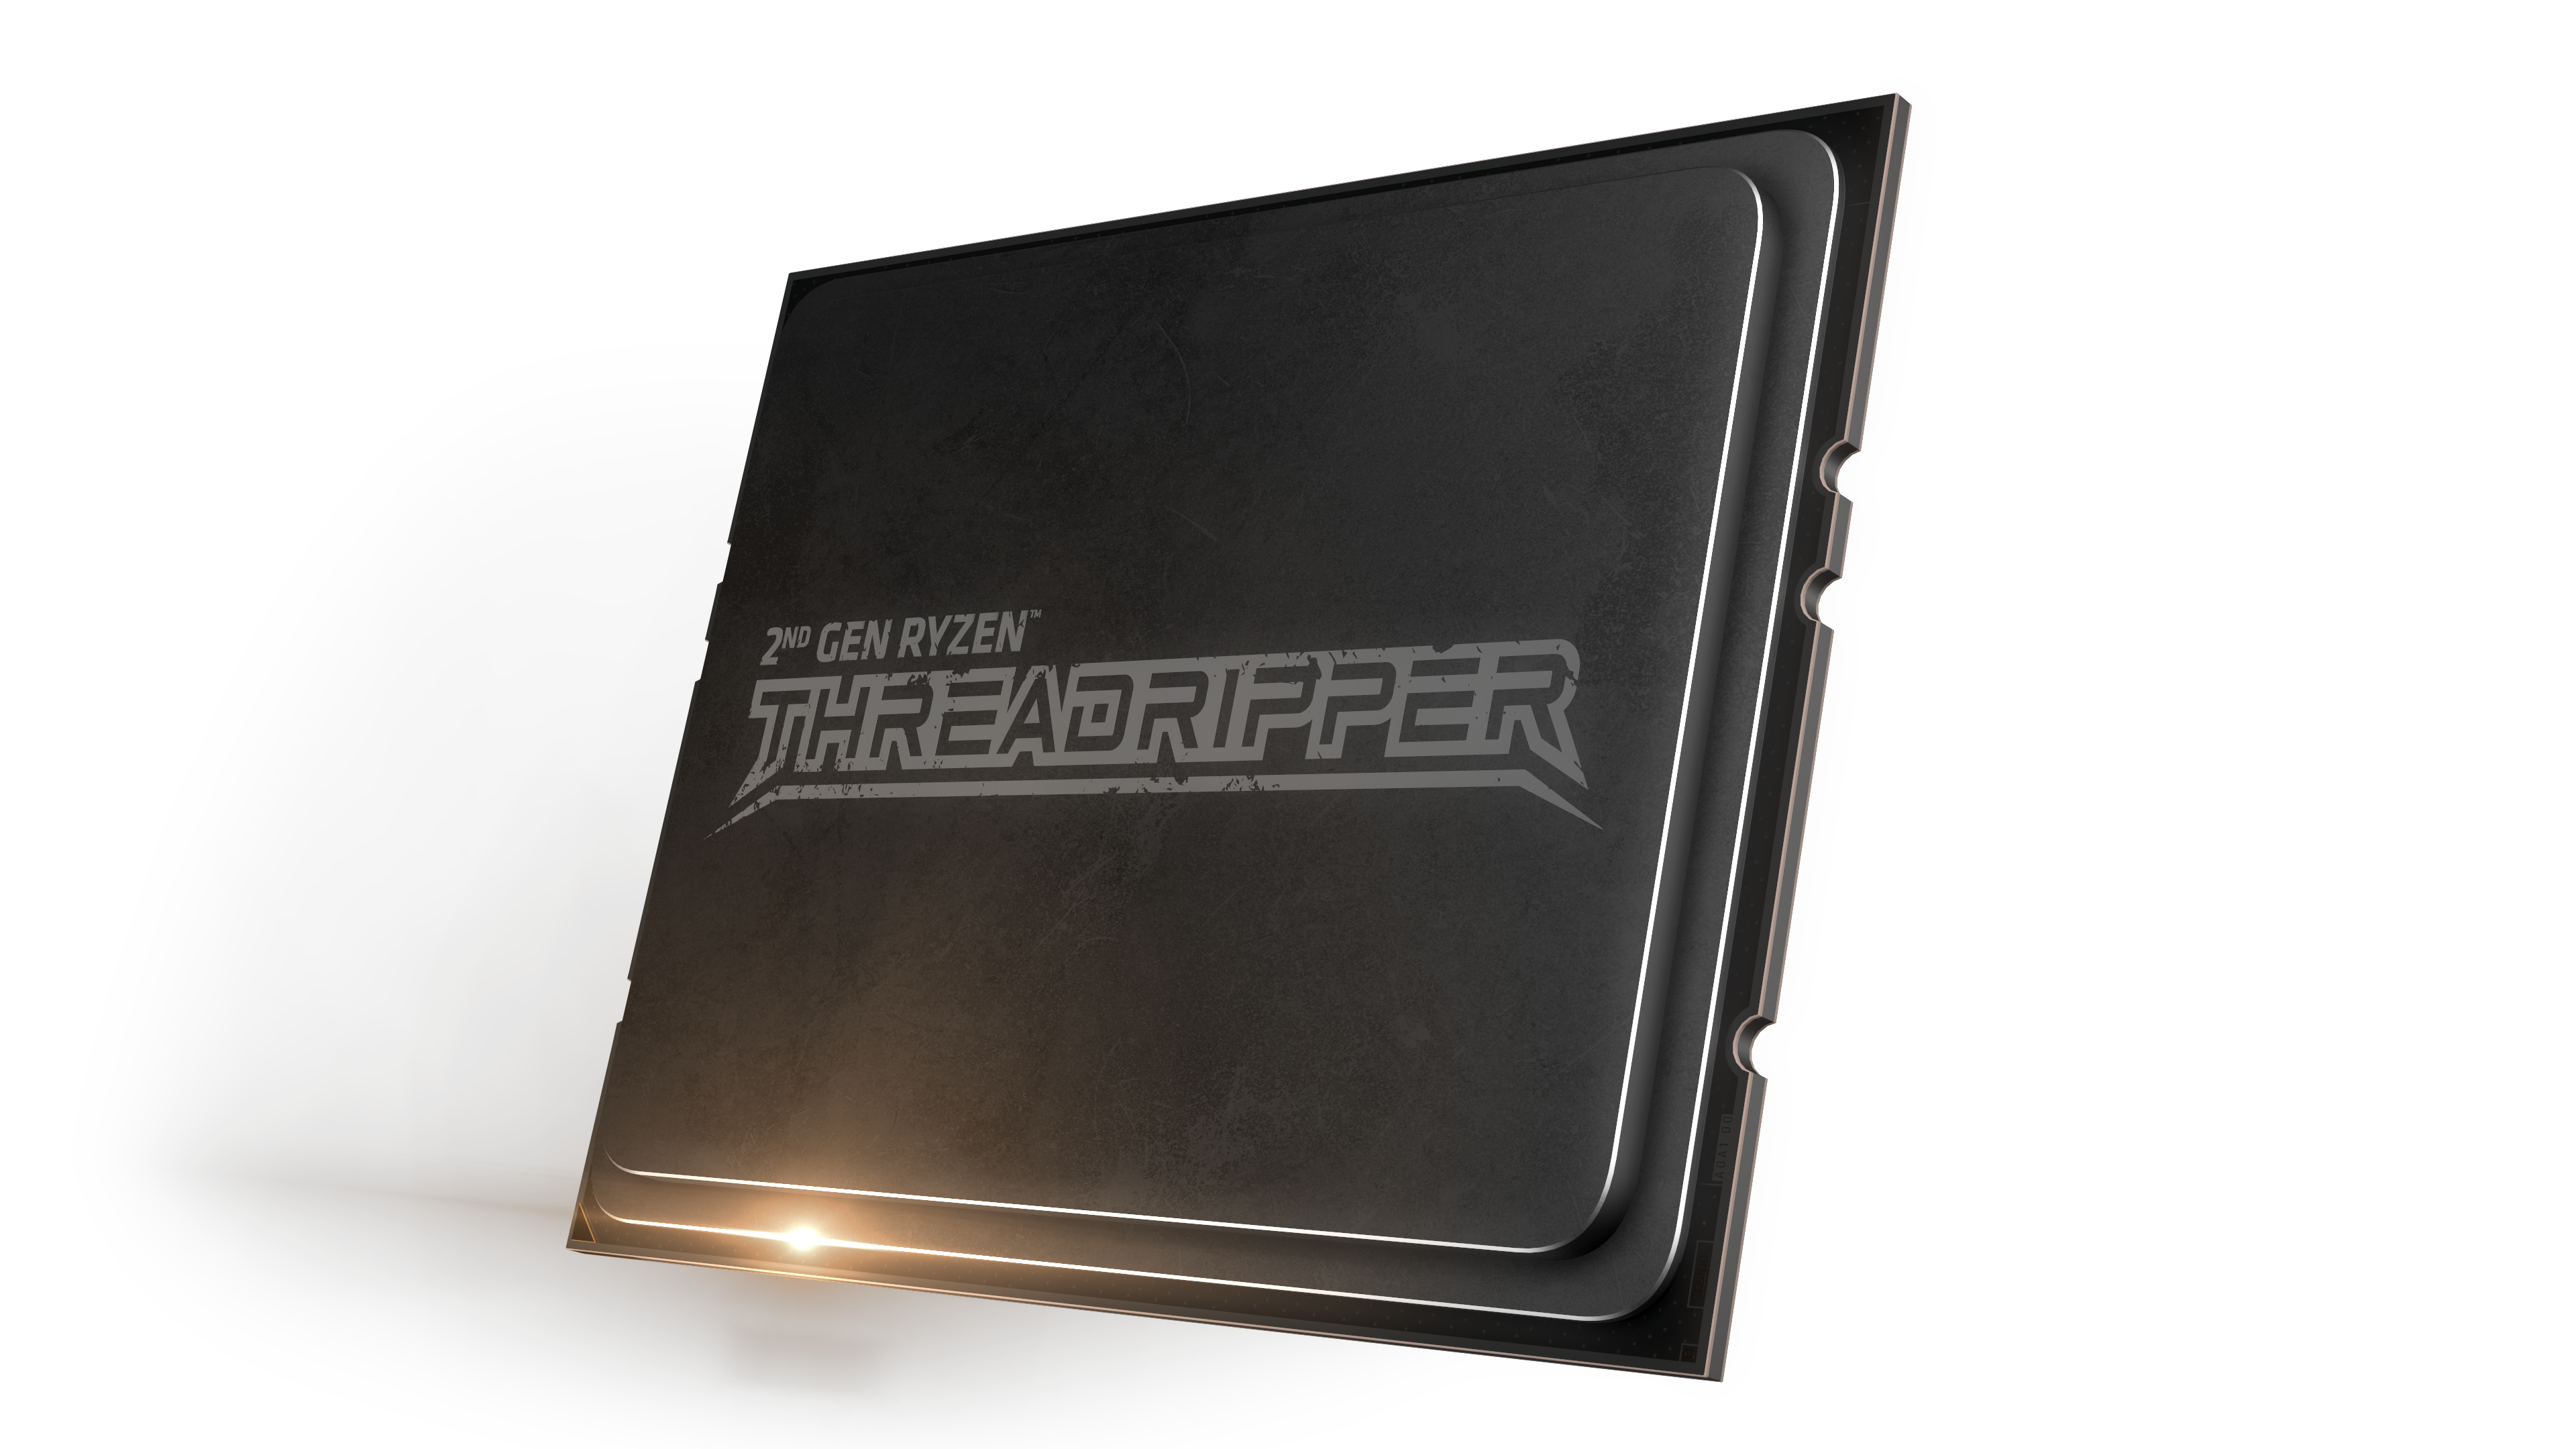 AMD takes wraps off the 2nd generation Threadrippers, pre-orders